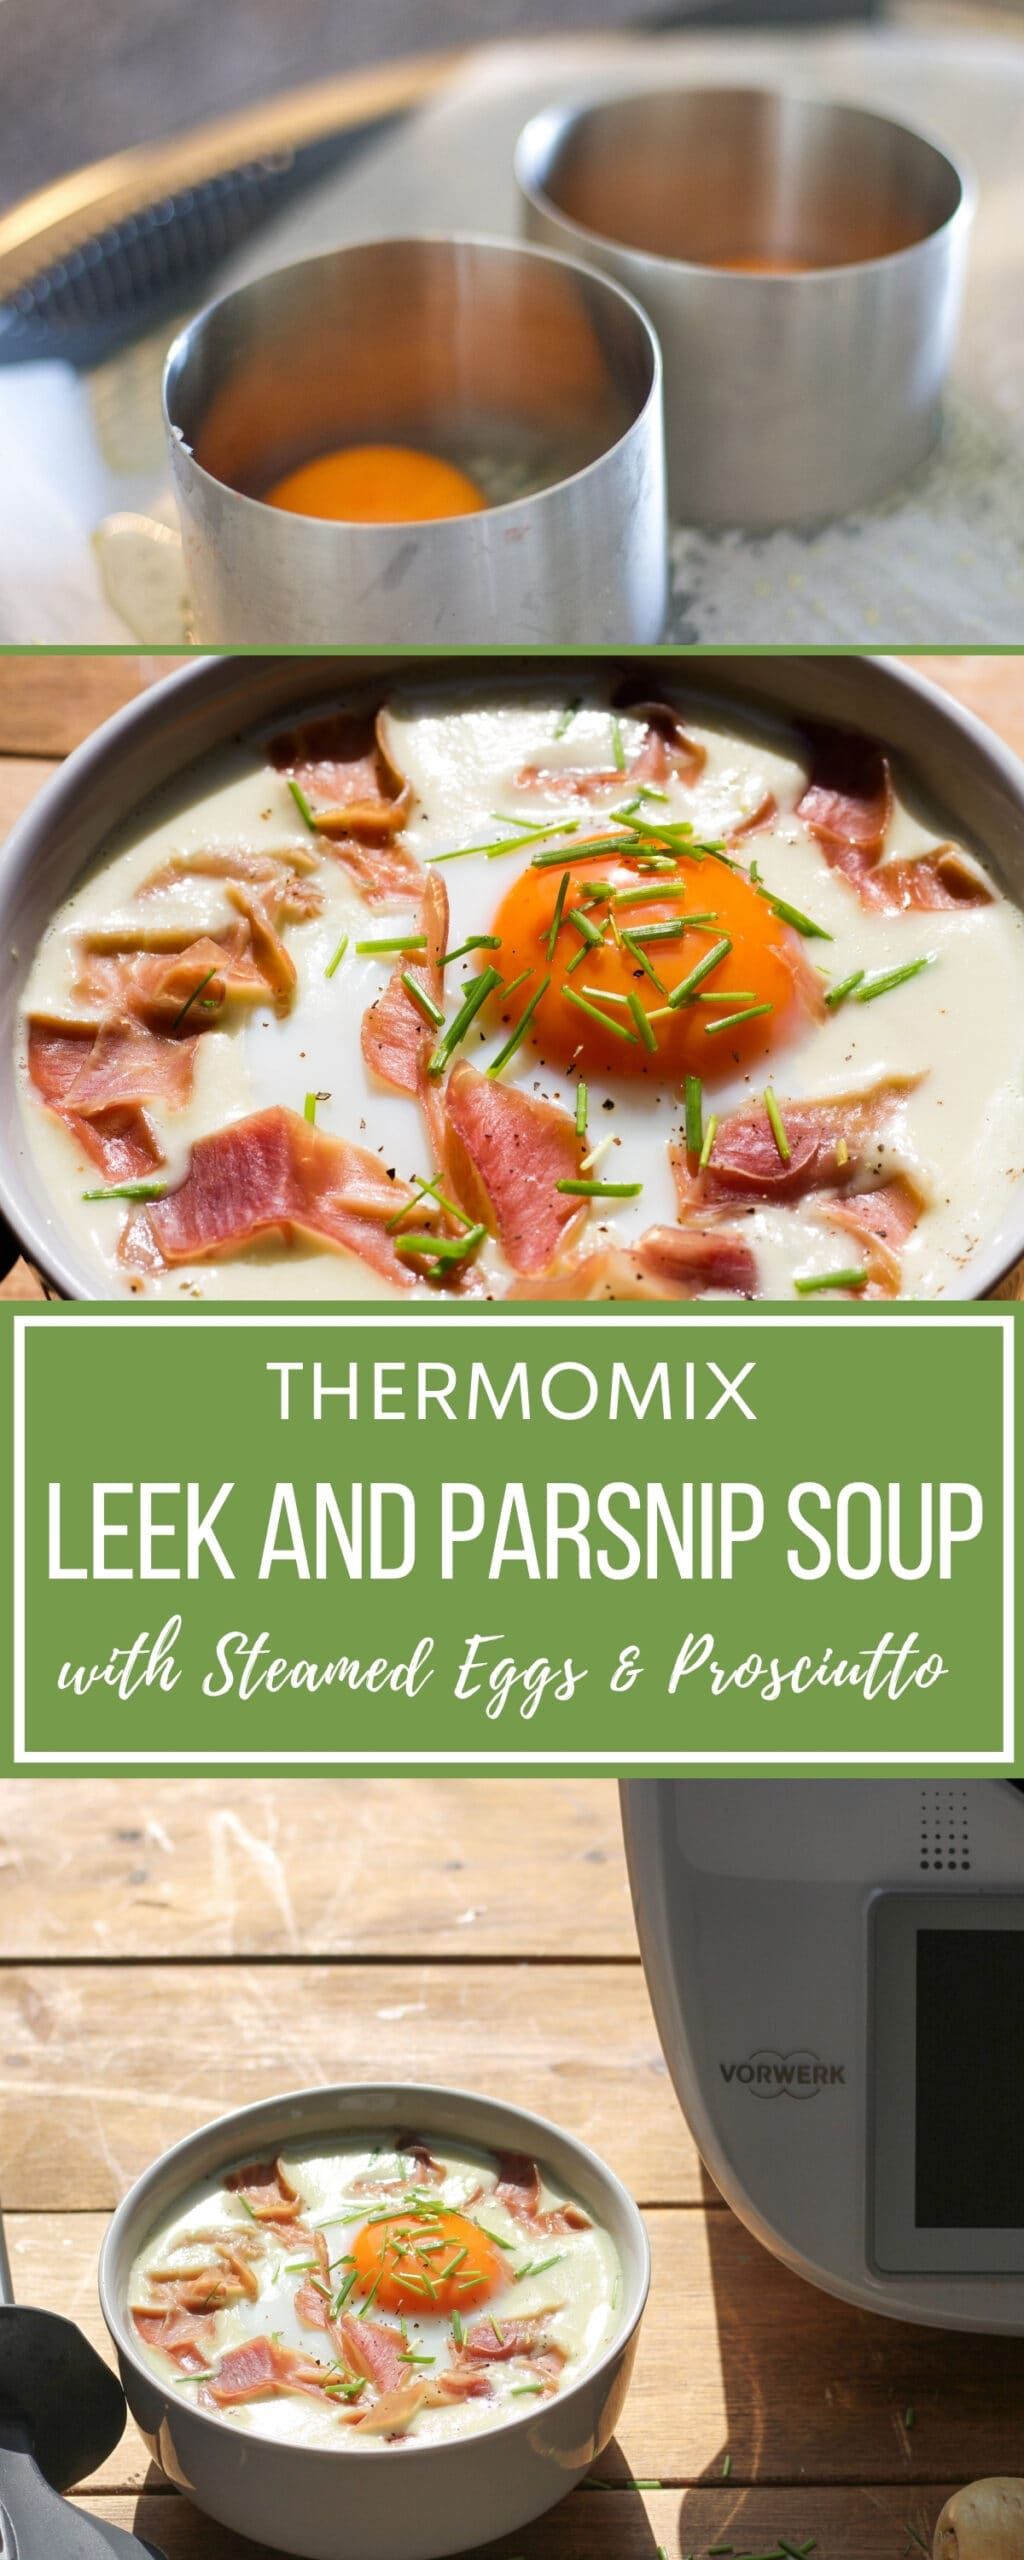 Leek and Parsnip Soup with Steamed Eggs & Prosciutto with Thermomix pin